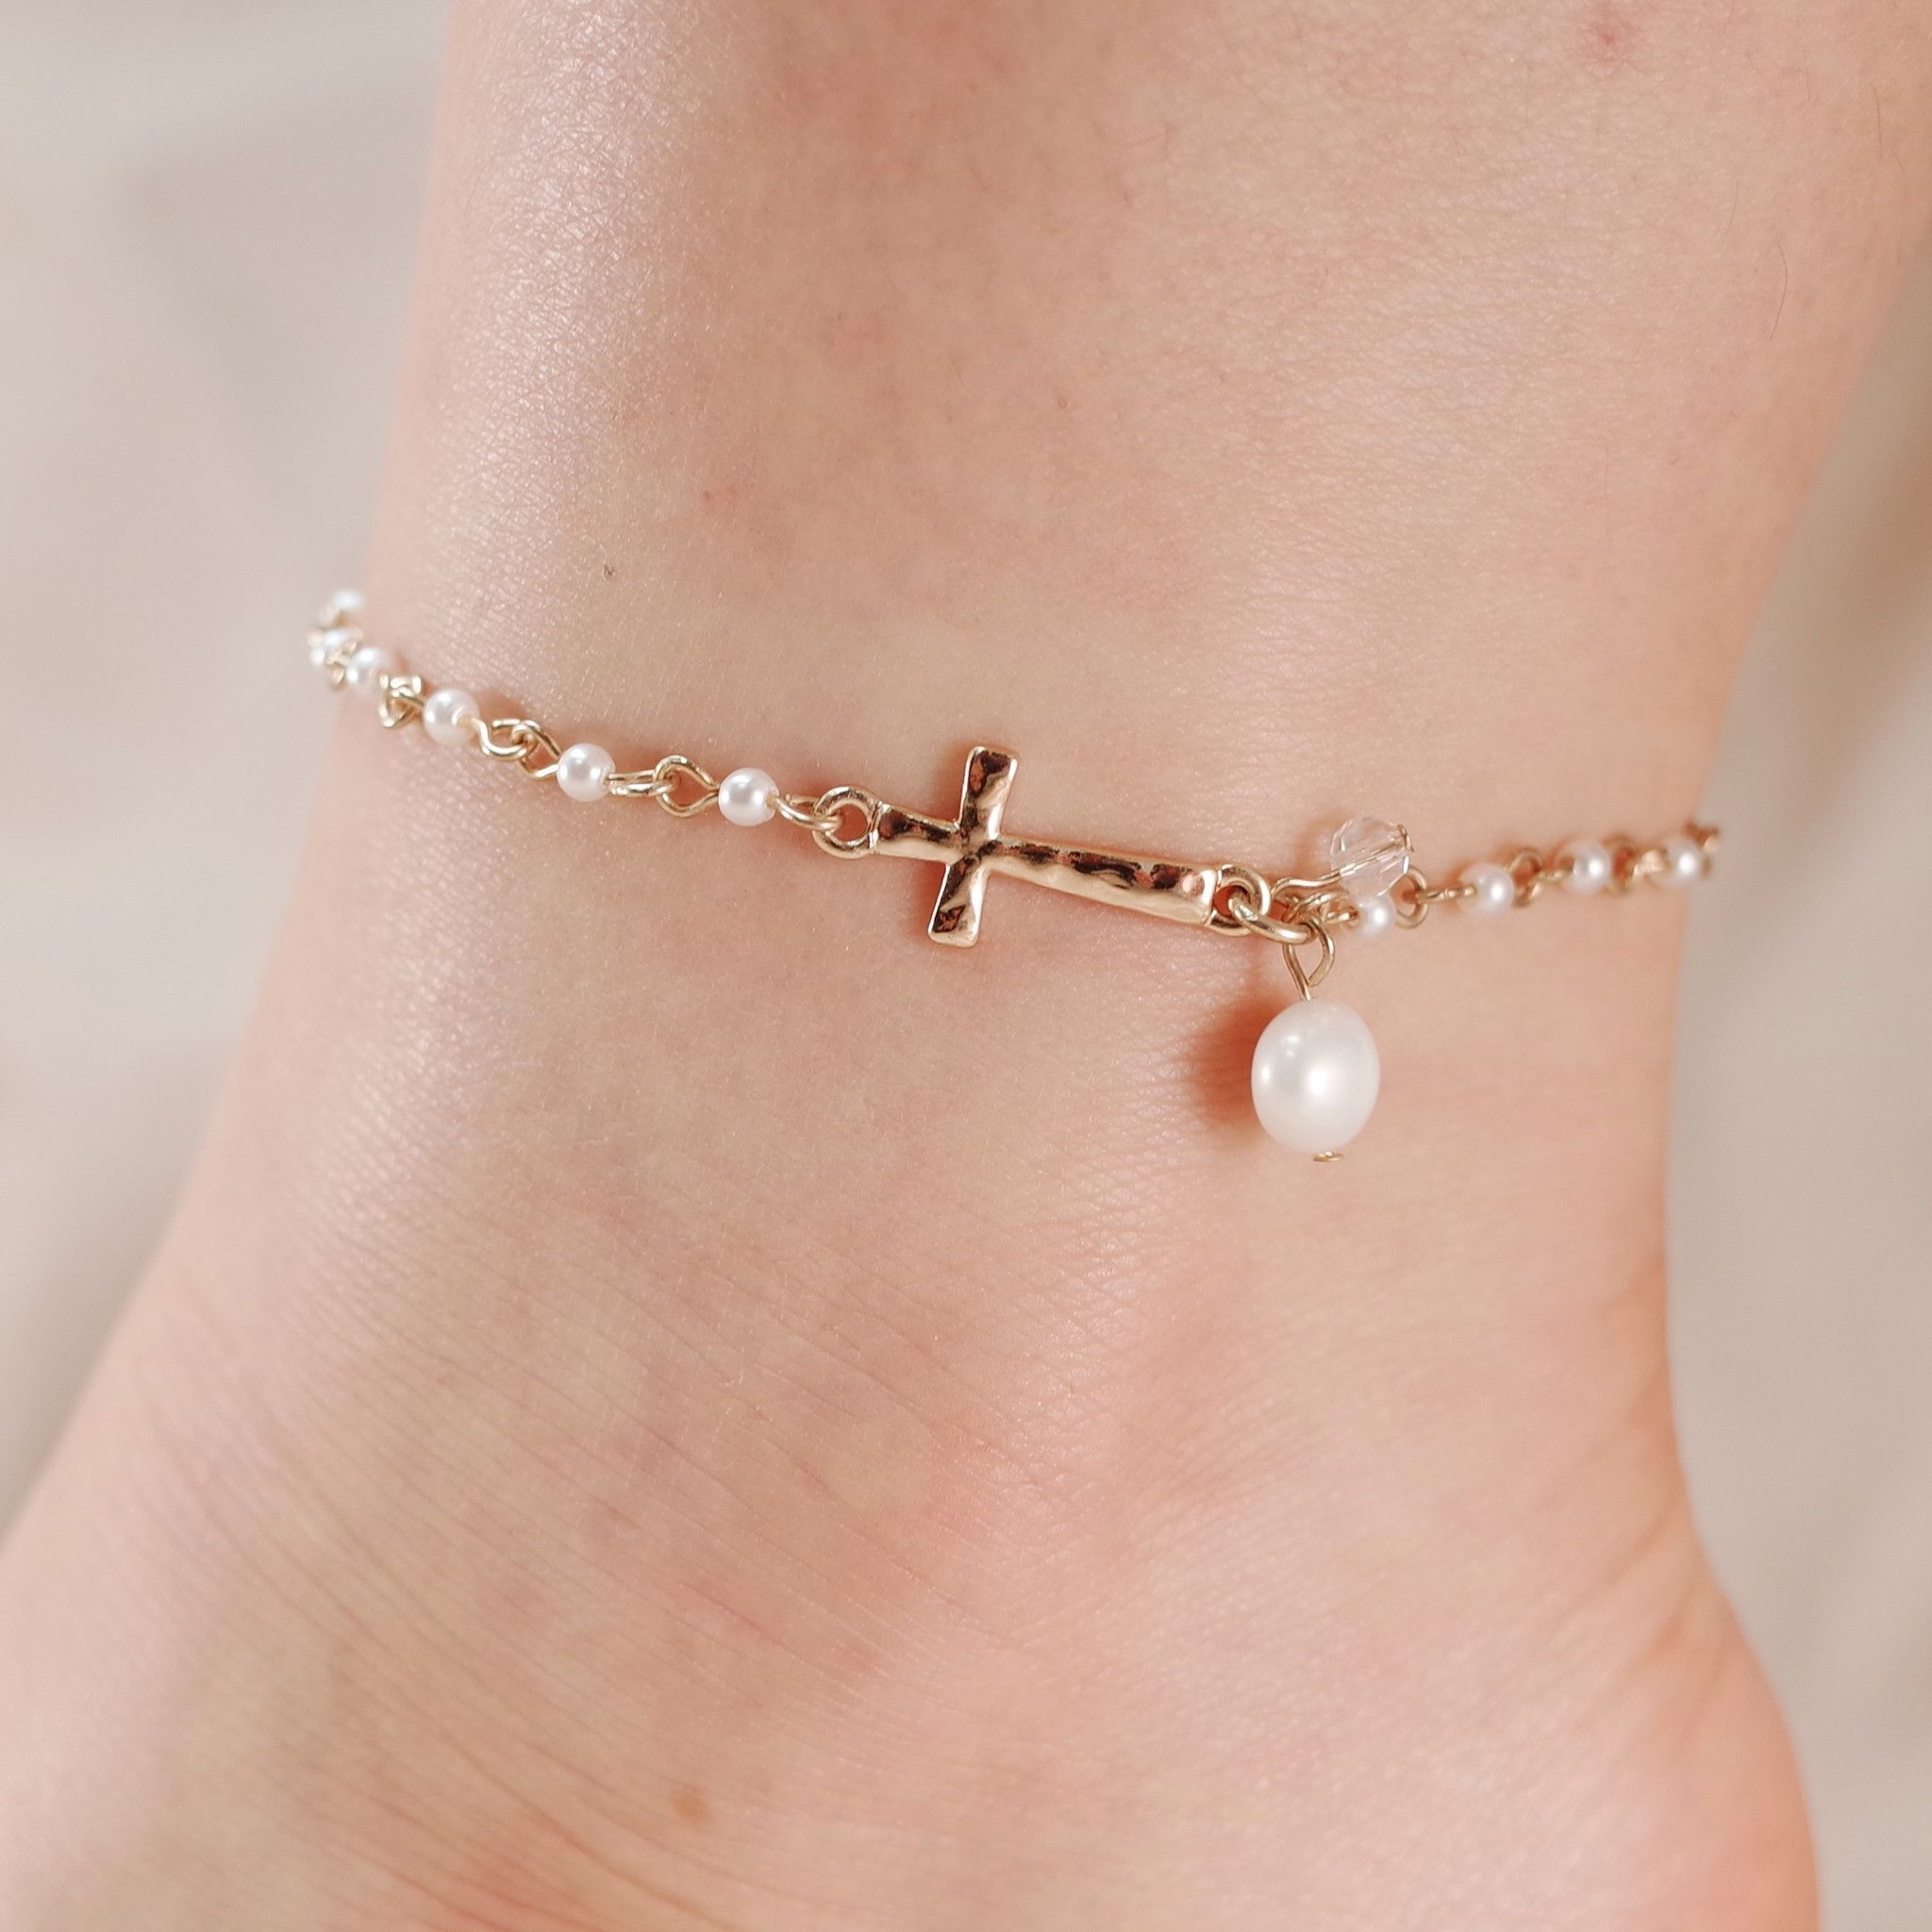 wear and toe anklet ecuatwitt women ladies woman rings wearing anklets that